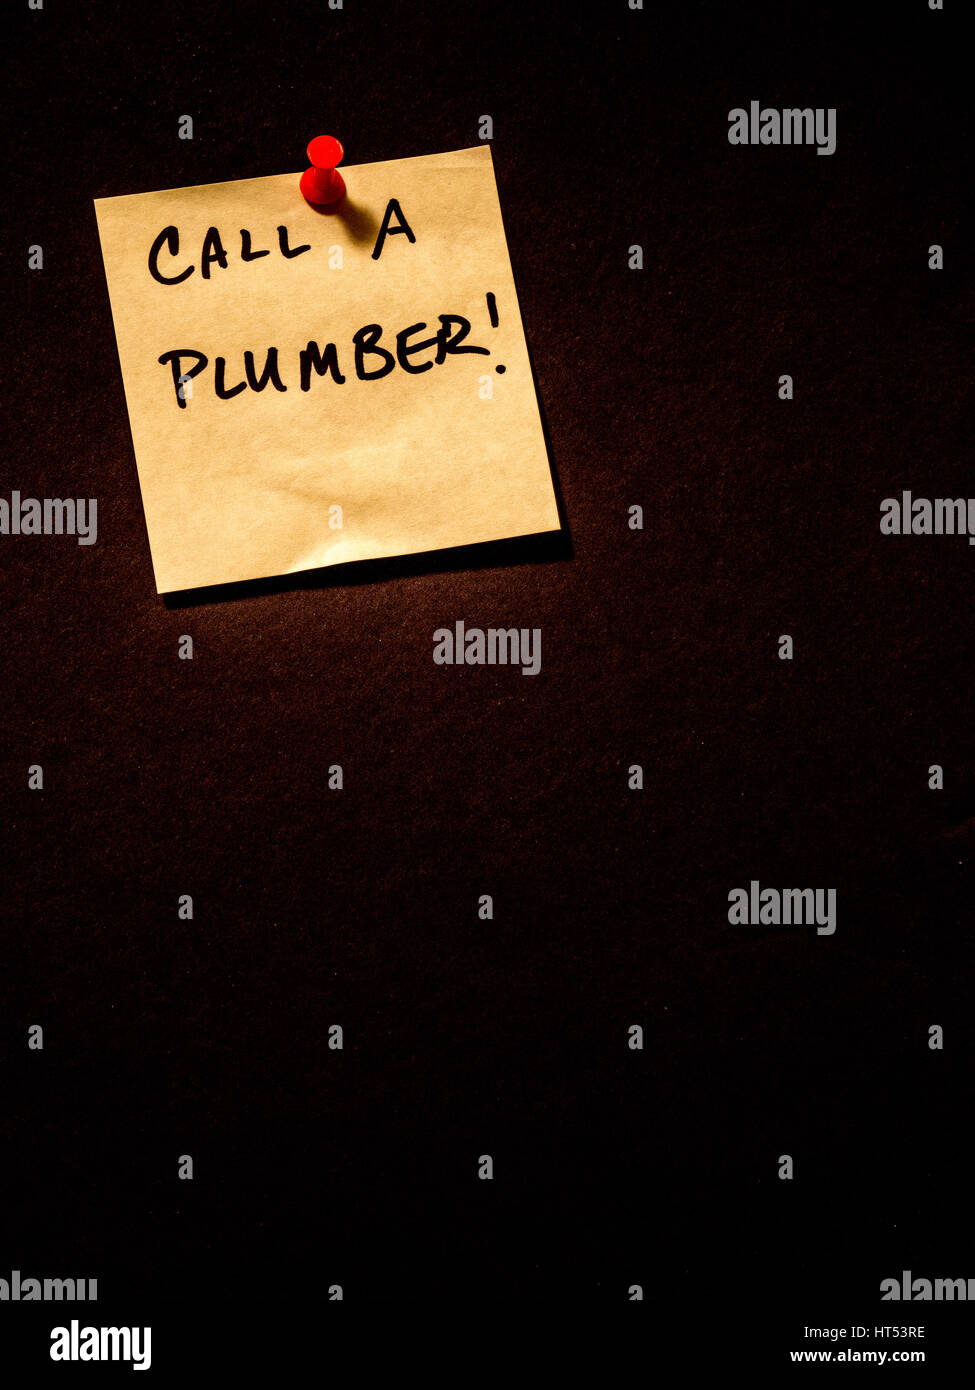 Call a plumber, post it note on black, portrait orientation - Stock Image